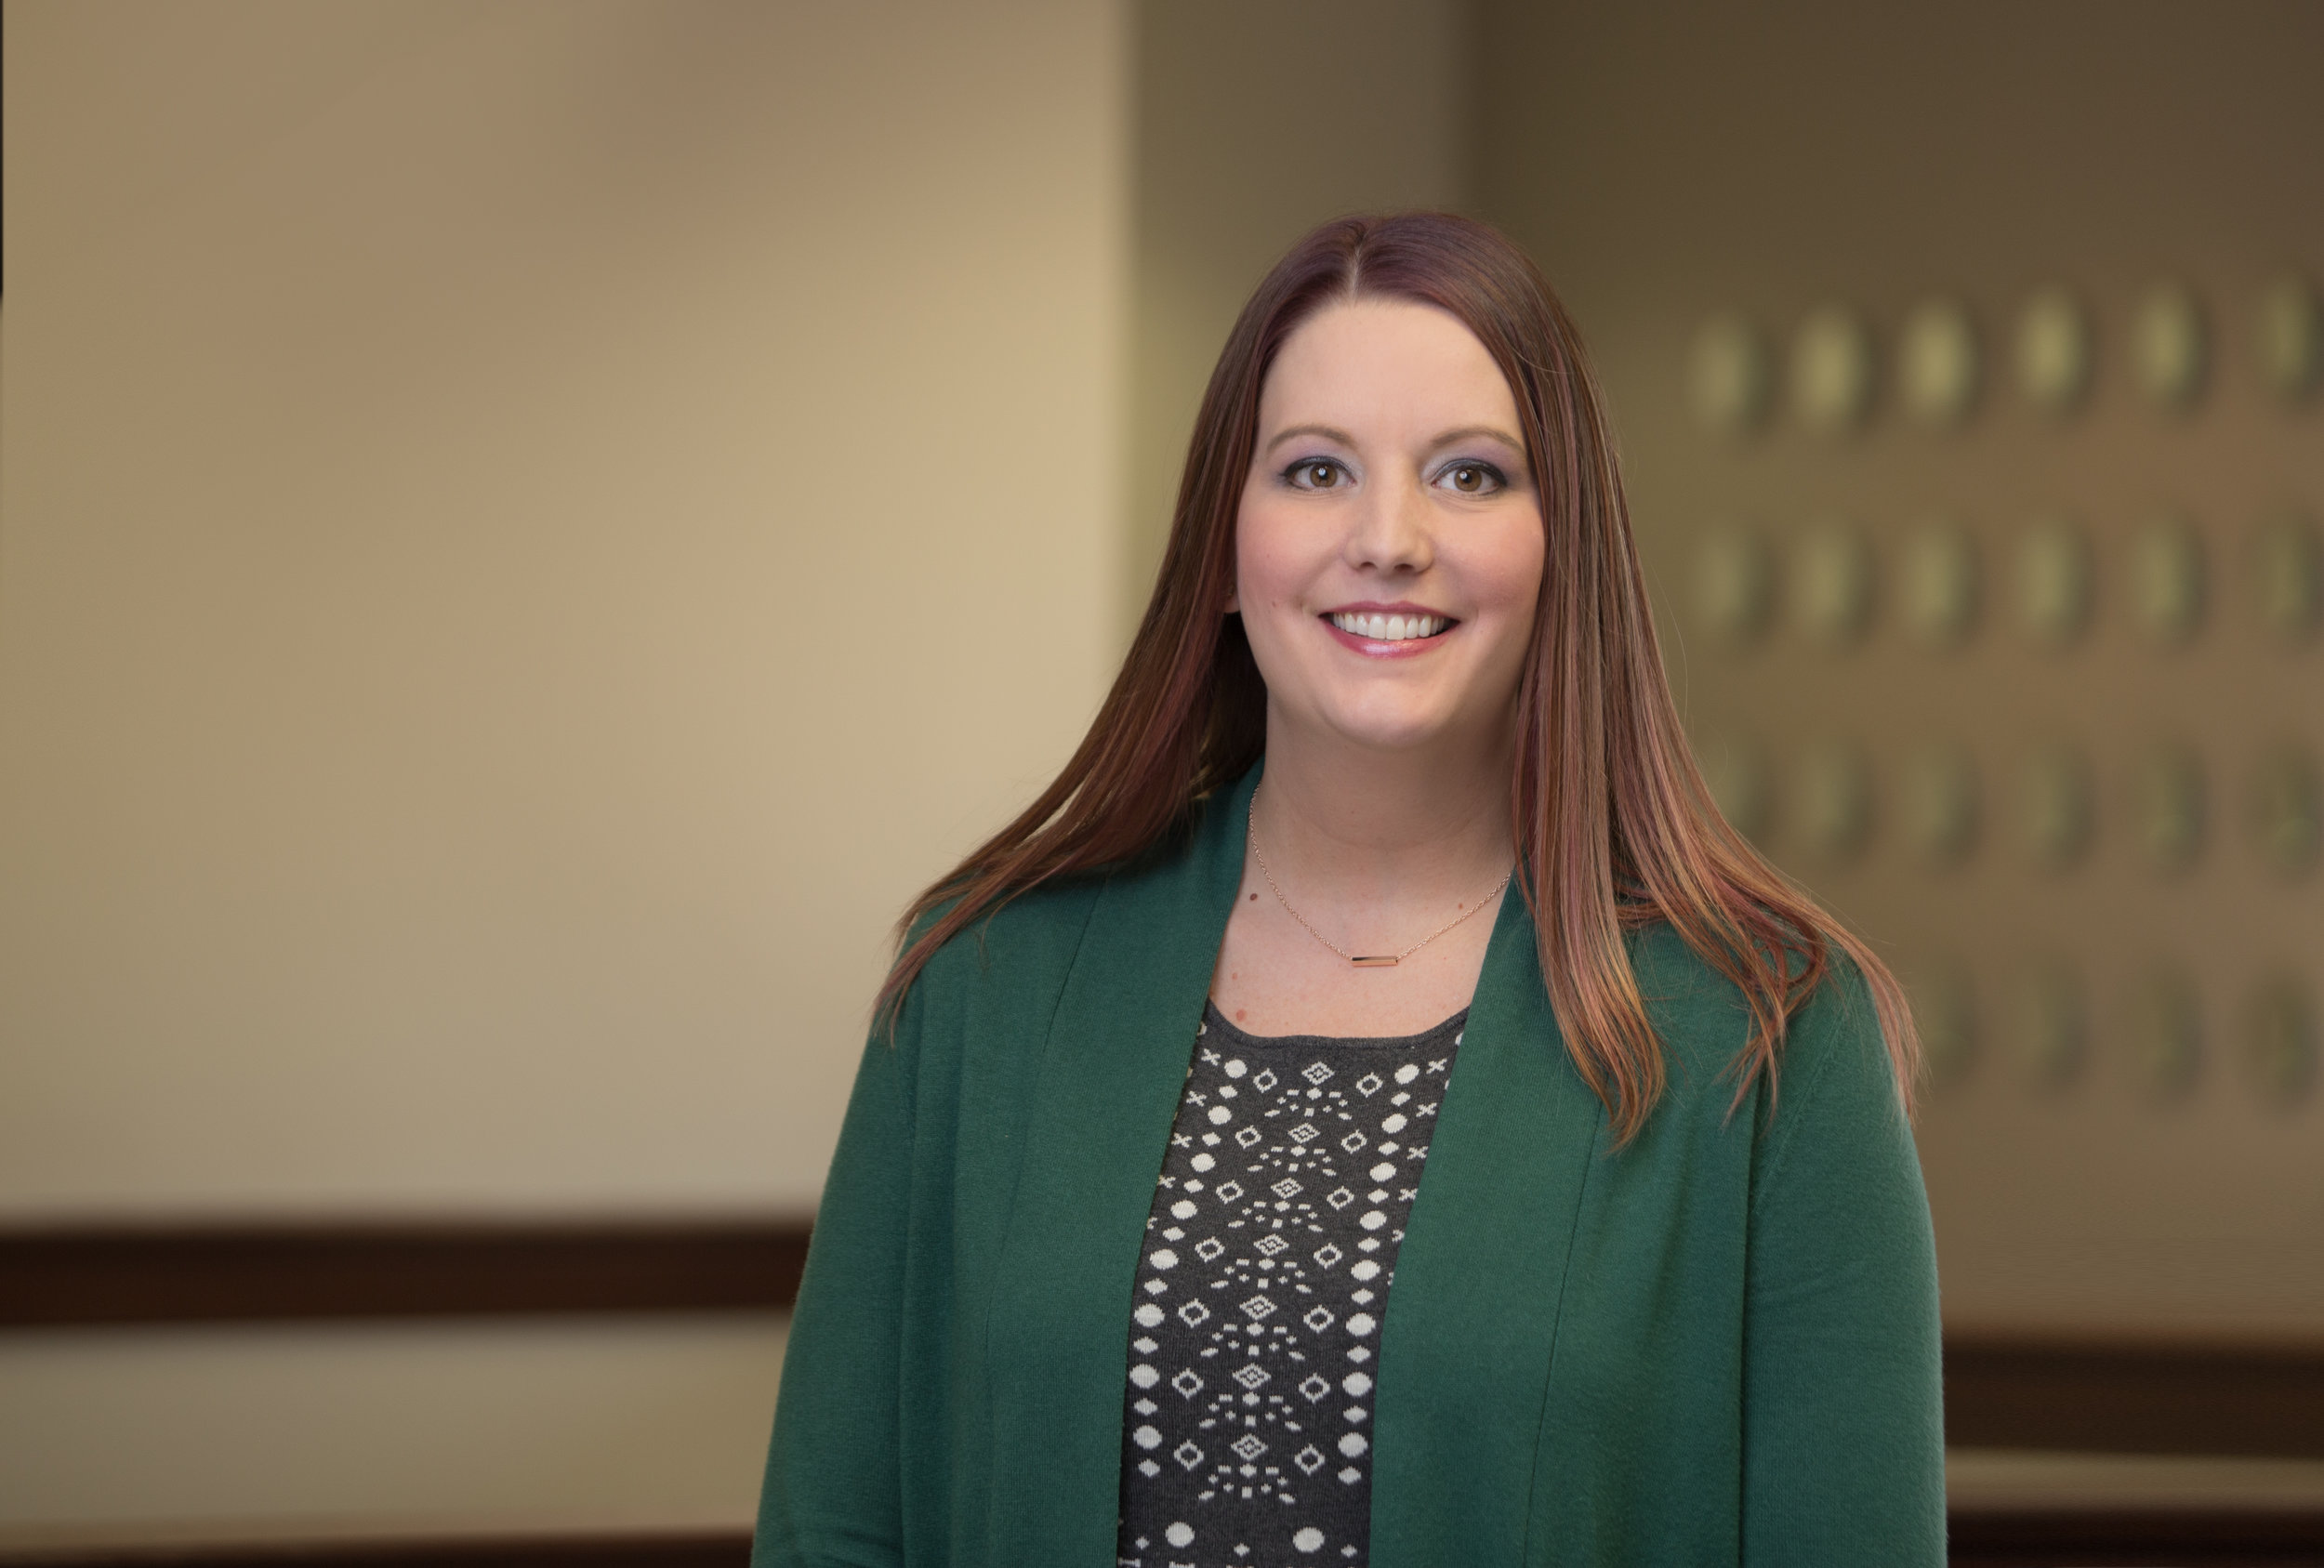 Jessica Tiegs, AINS - Account ExecutiveJessica joined the Vaaler team in 2014. She is a graduate of UND with a B.S. in Secondary Education/Social Studies and a minor in History. Jessica's past experience includes site management at LISTEN and substitute teaching at Grand Forks Public Schools.She holds an Associate in General Insurance designation from the Insurance Institute of America.She is a member of Immanuel Lutheran Church and her hobbies include reading, watching baseball, walking her dogs, and playing with her 2 daughters.